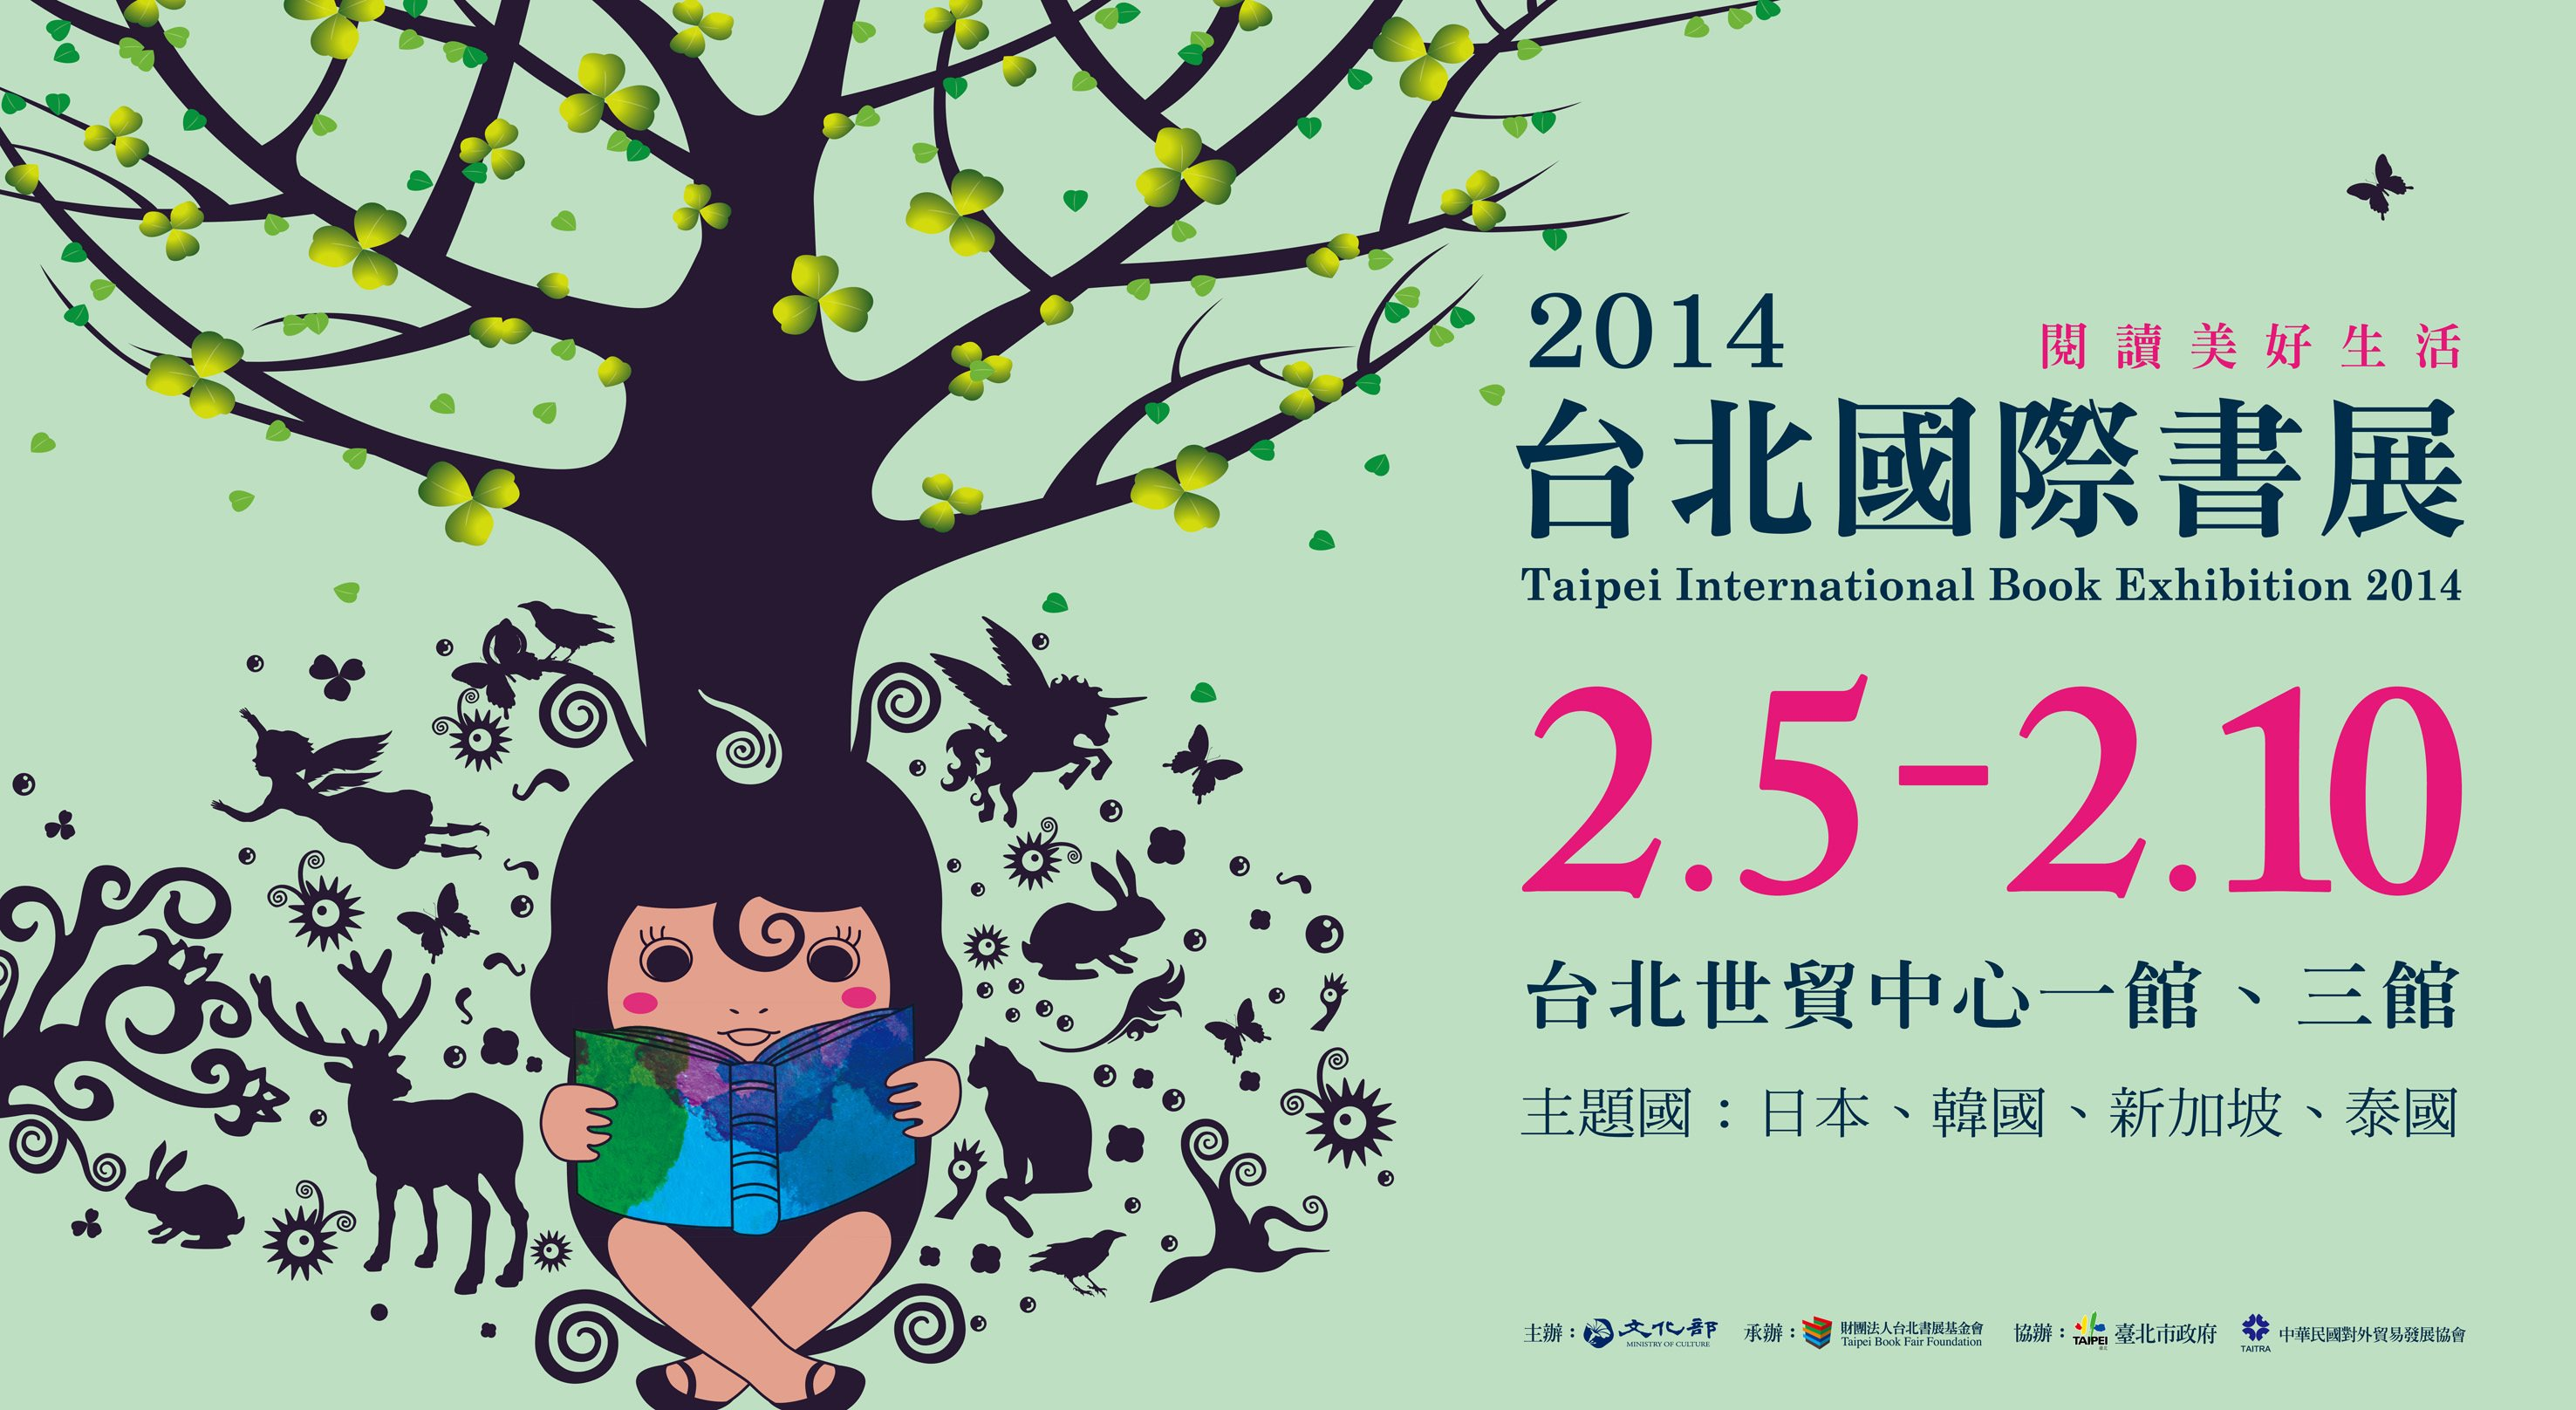 2014 Taipei International Book Exhibition - English Documentary